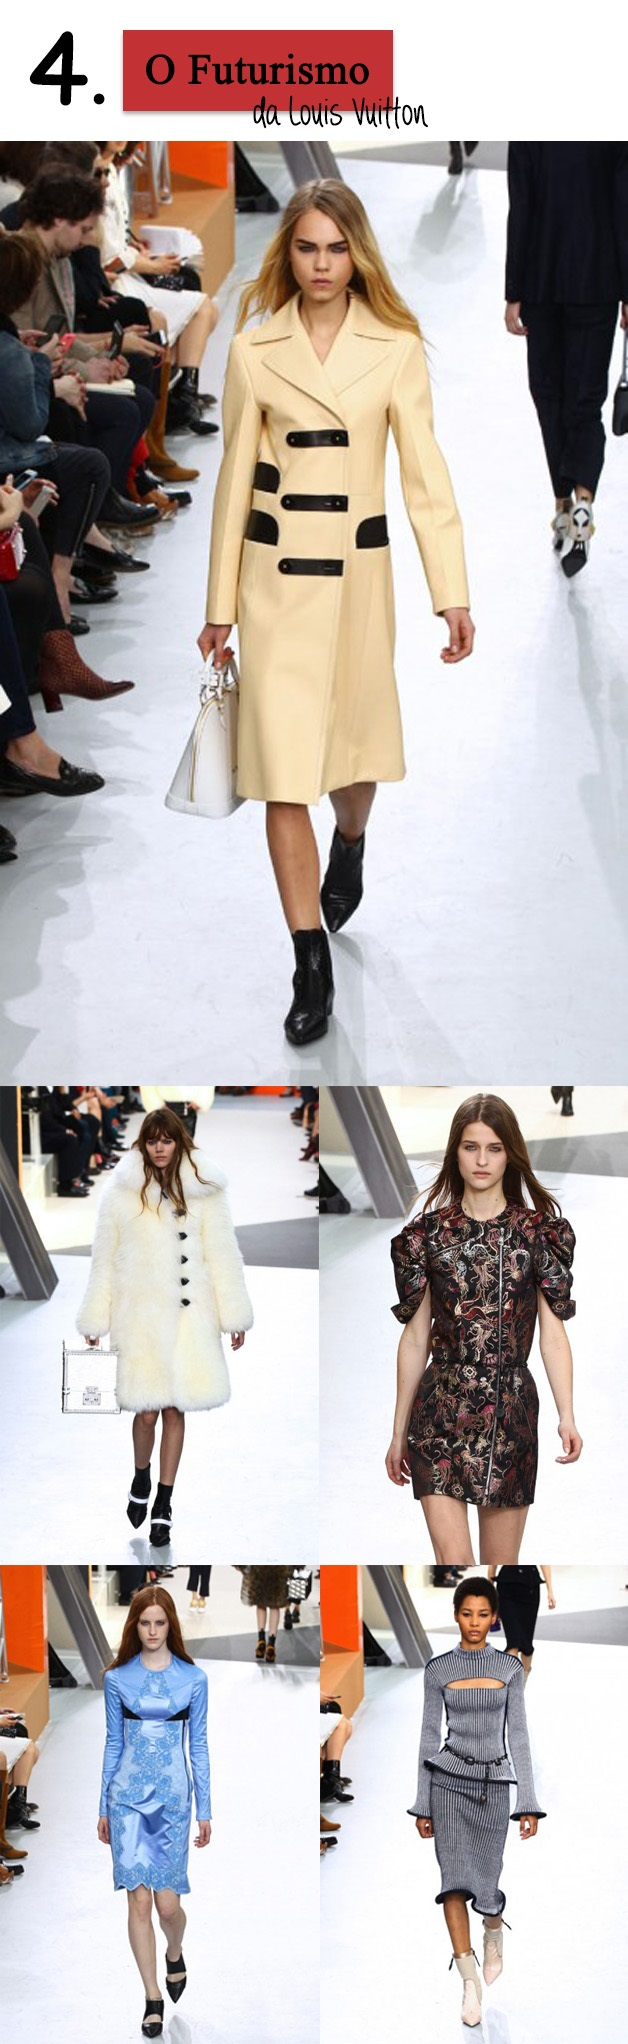 louis-vuitton-paris-fashion-week-carola-duarte